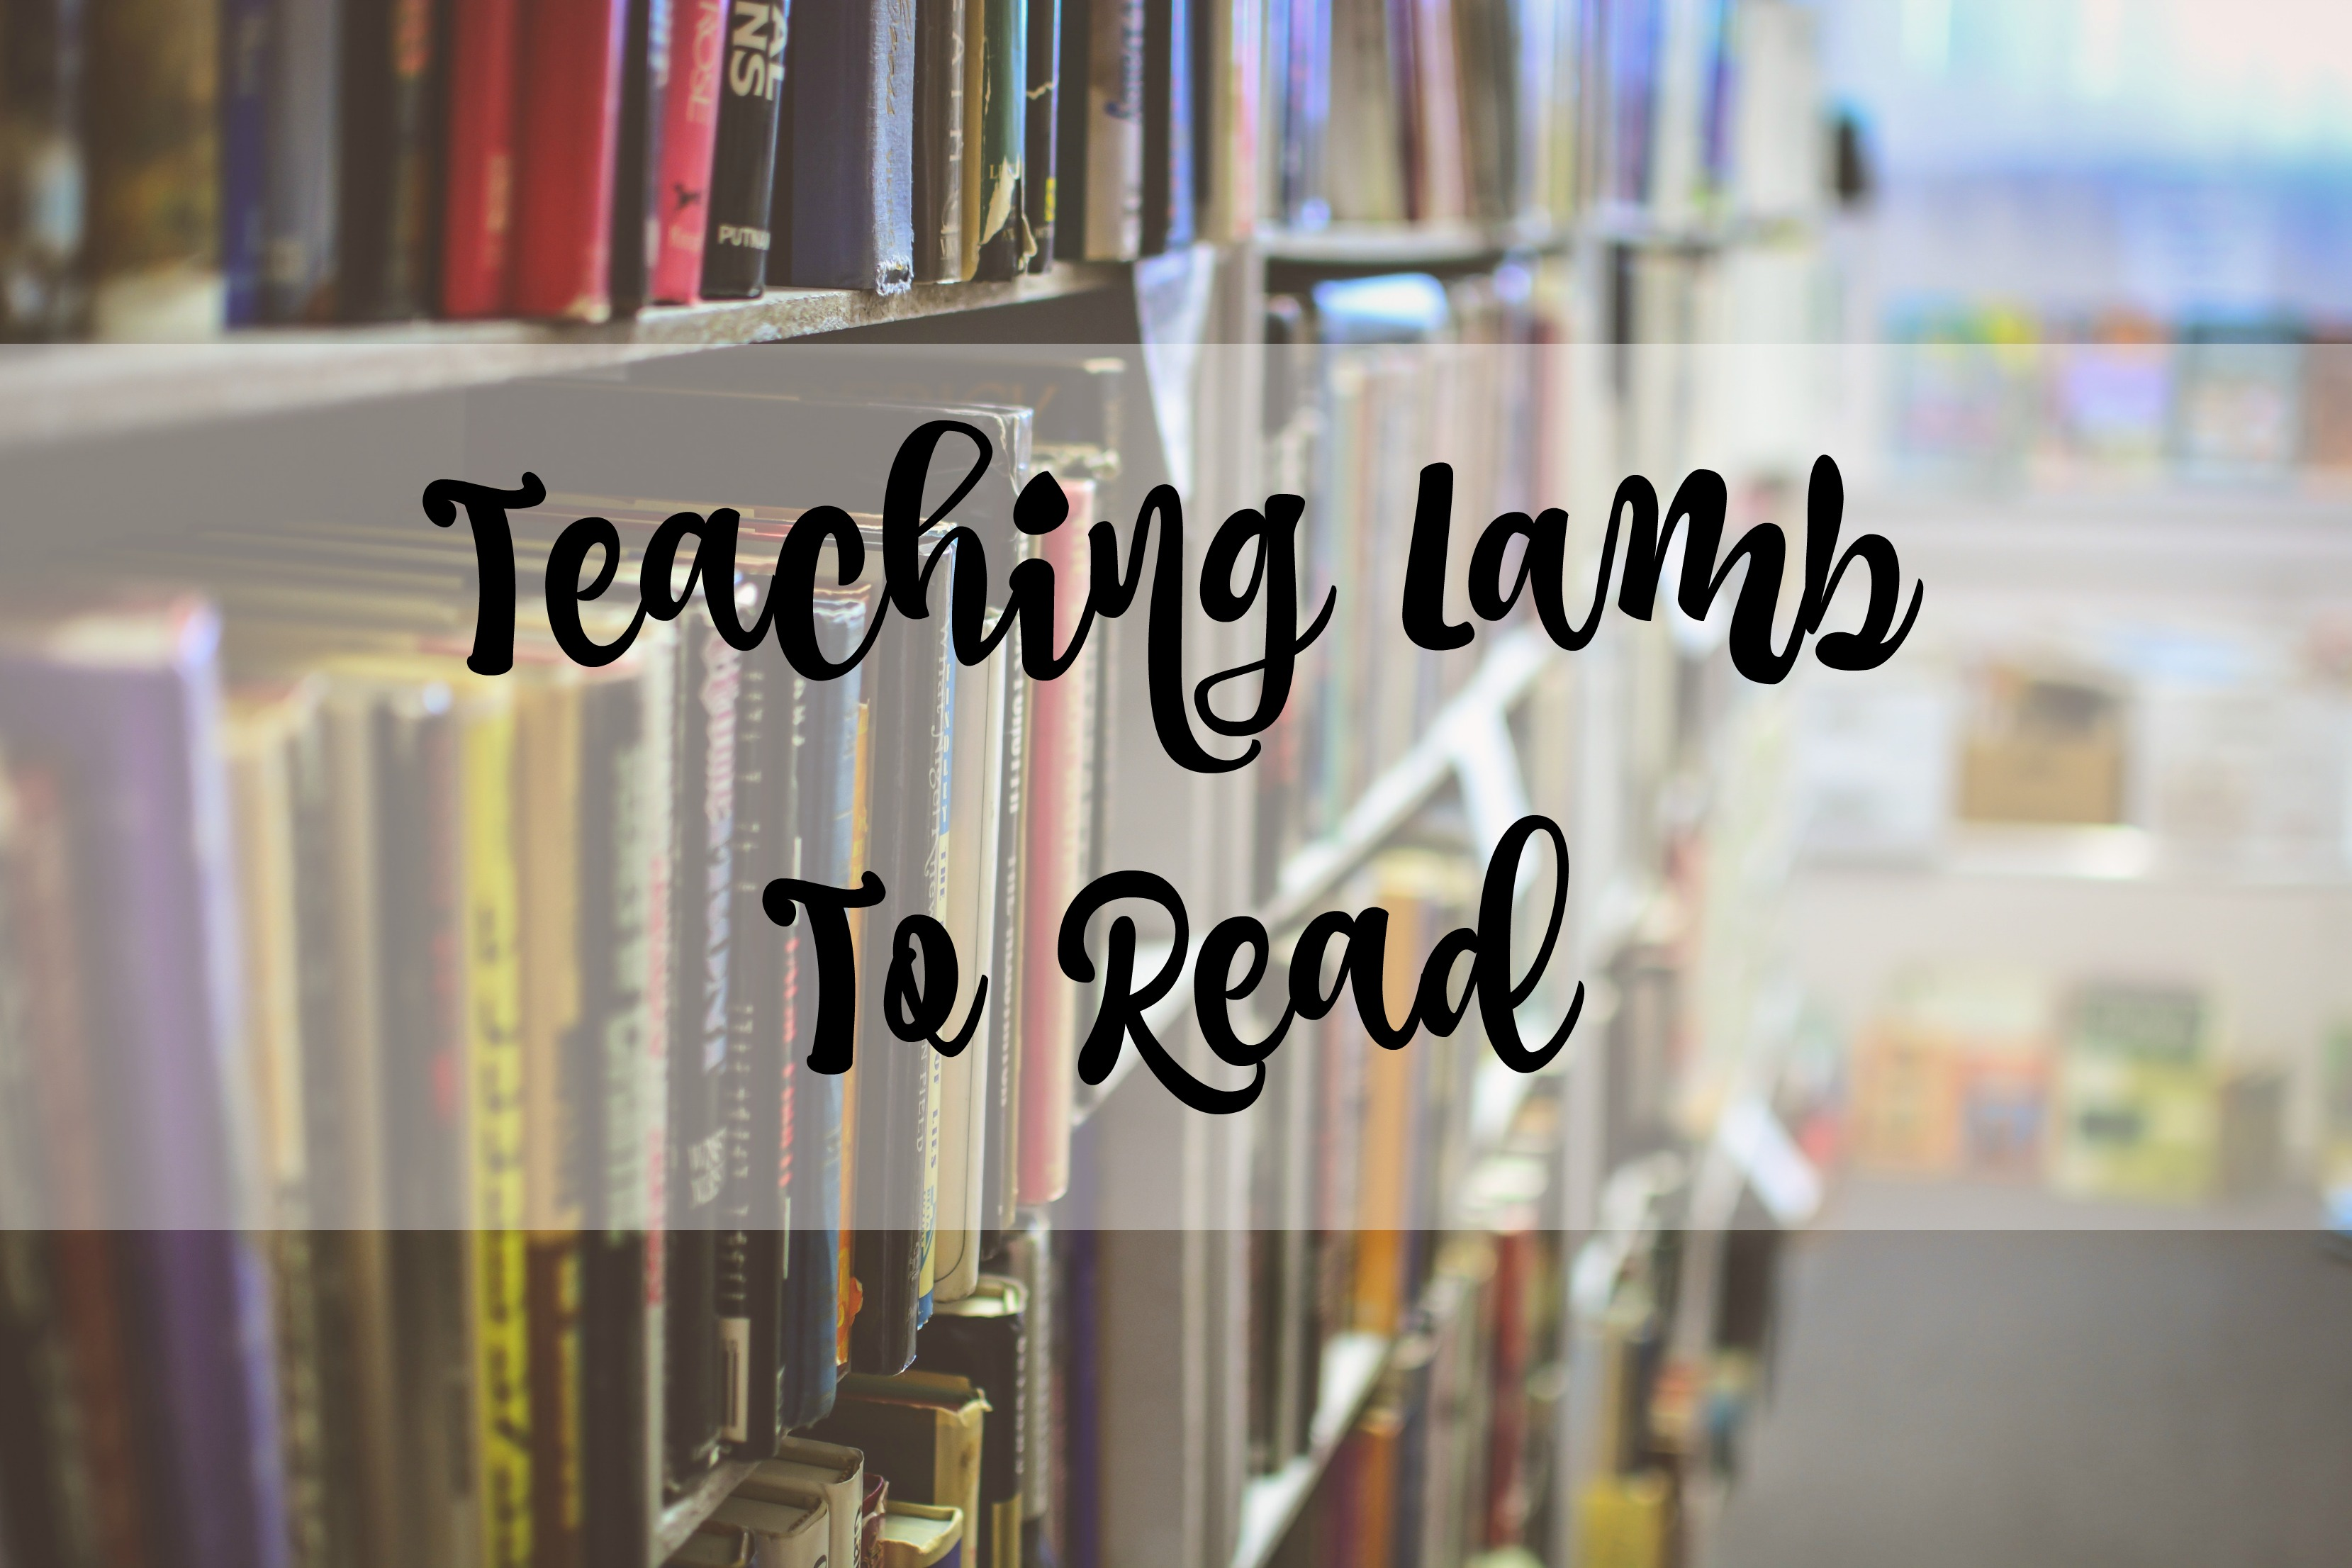 teaching lamb to read title